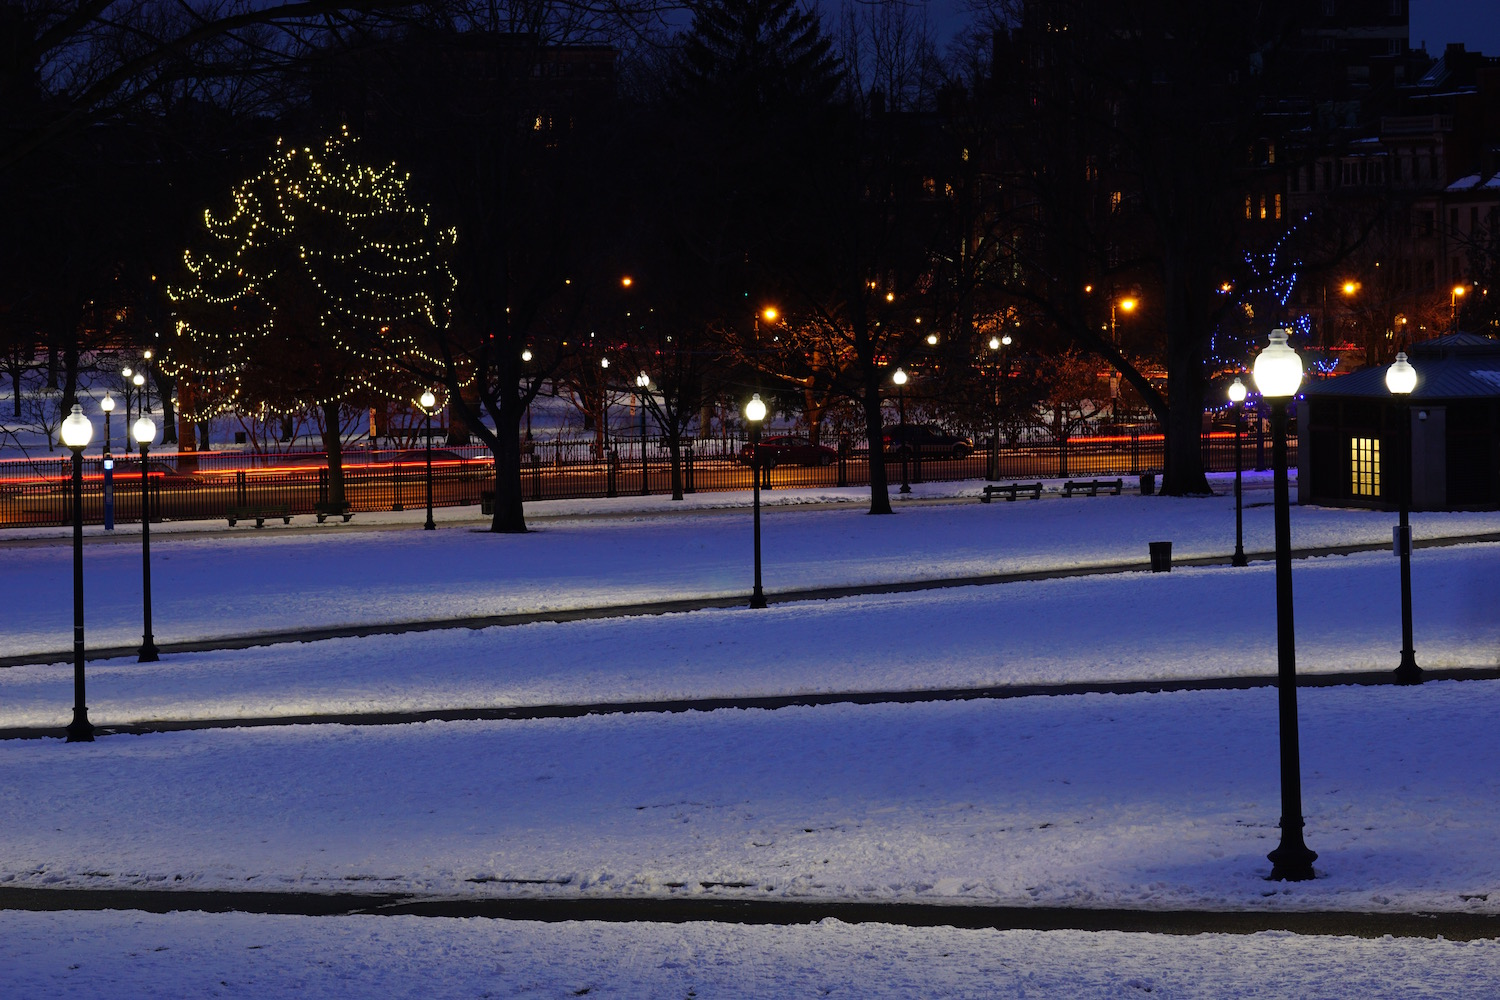 Boston Common at night by Suzanne Merritt  copy.jpg